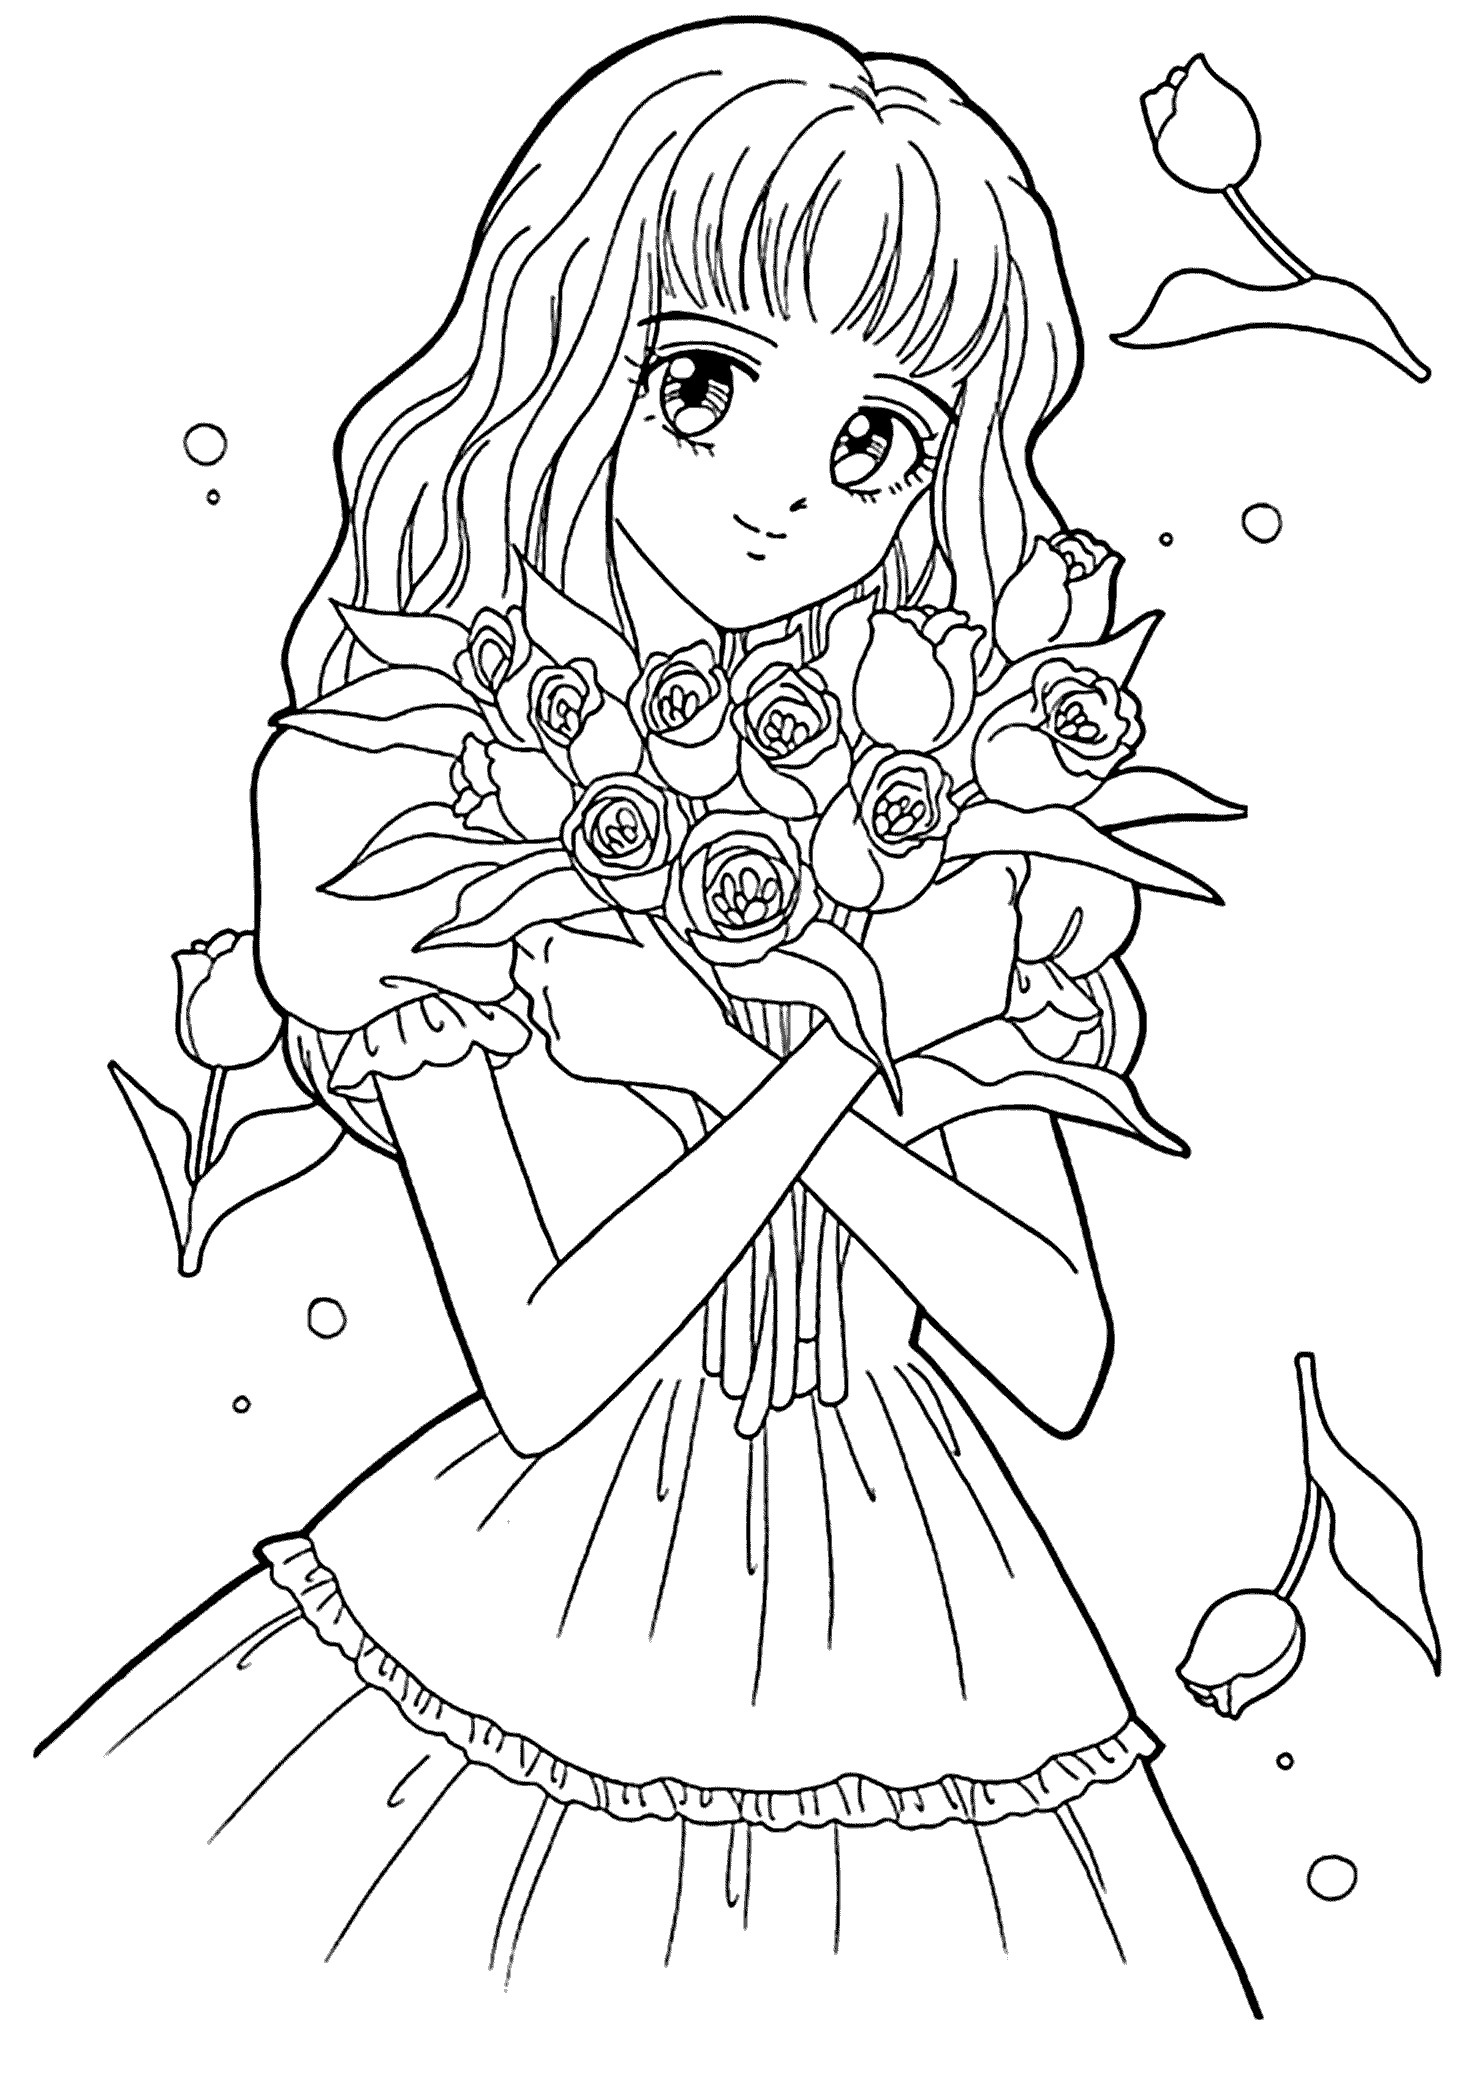 japanese anime girl coloring pages this photo was uploaded by khateerah japanese anime coloring girl japanese anime pages